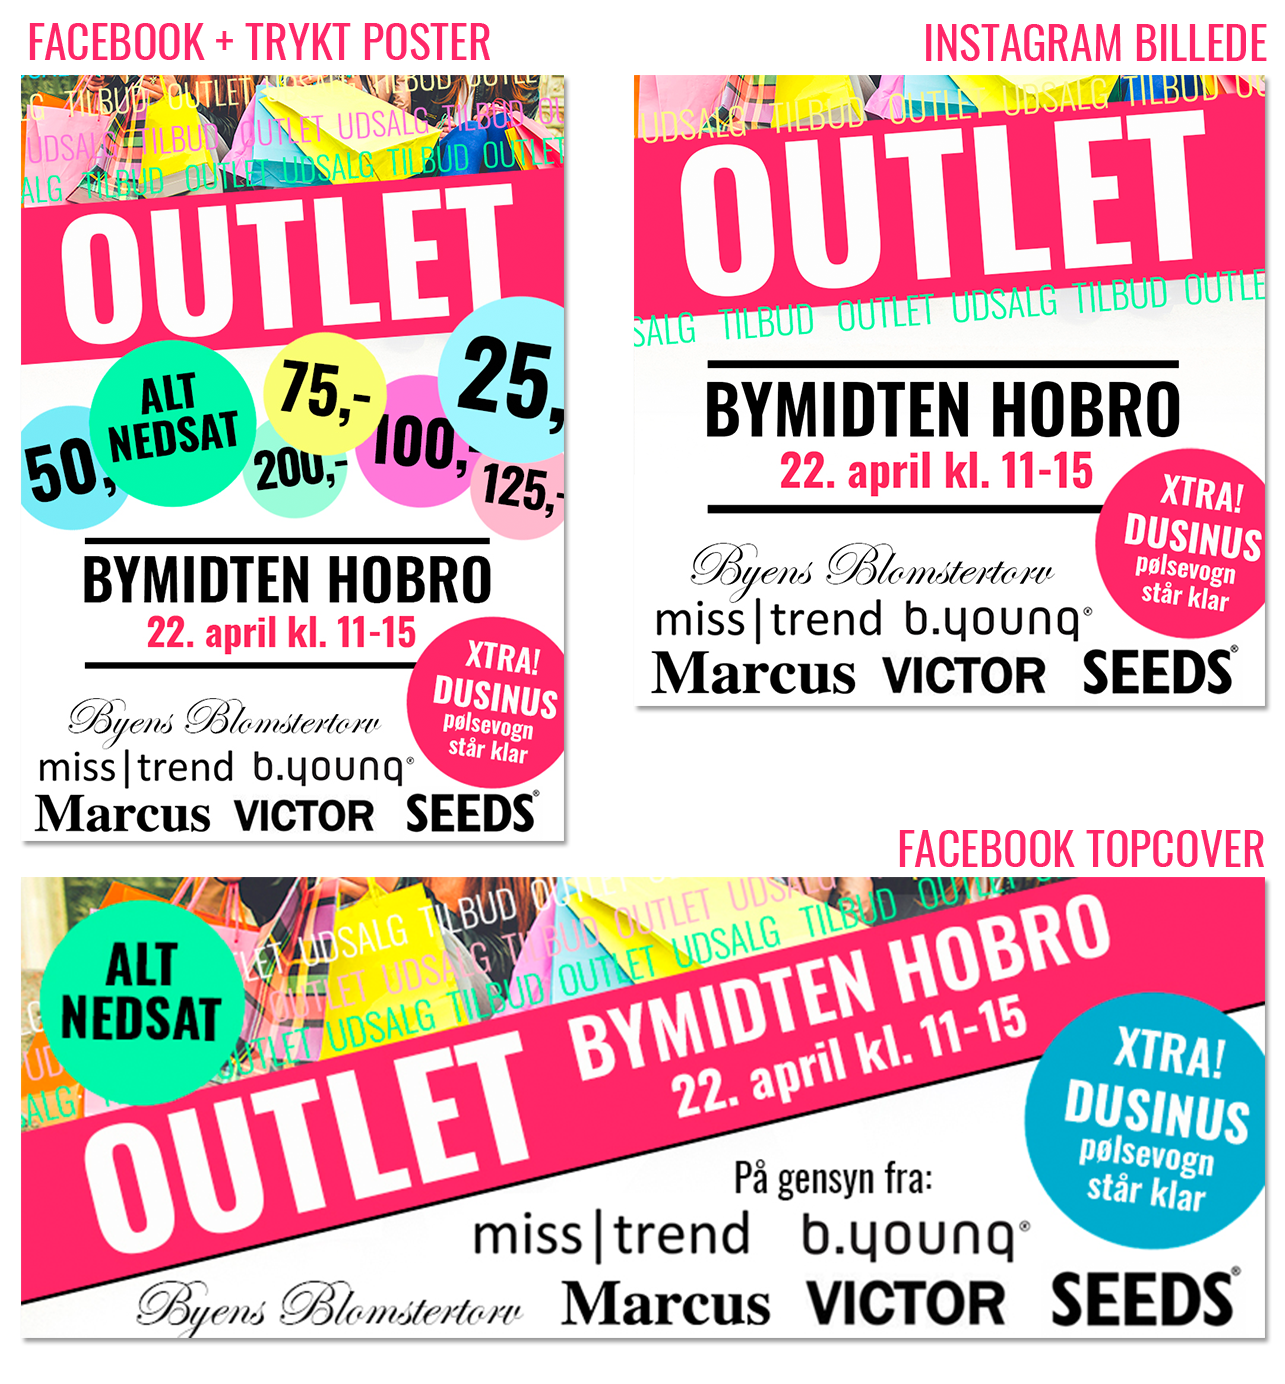 Outlet Miss trend